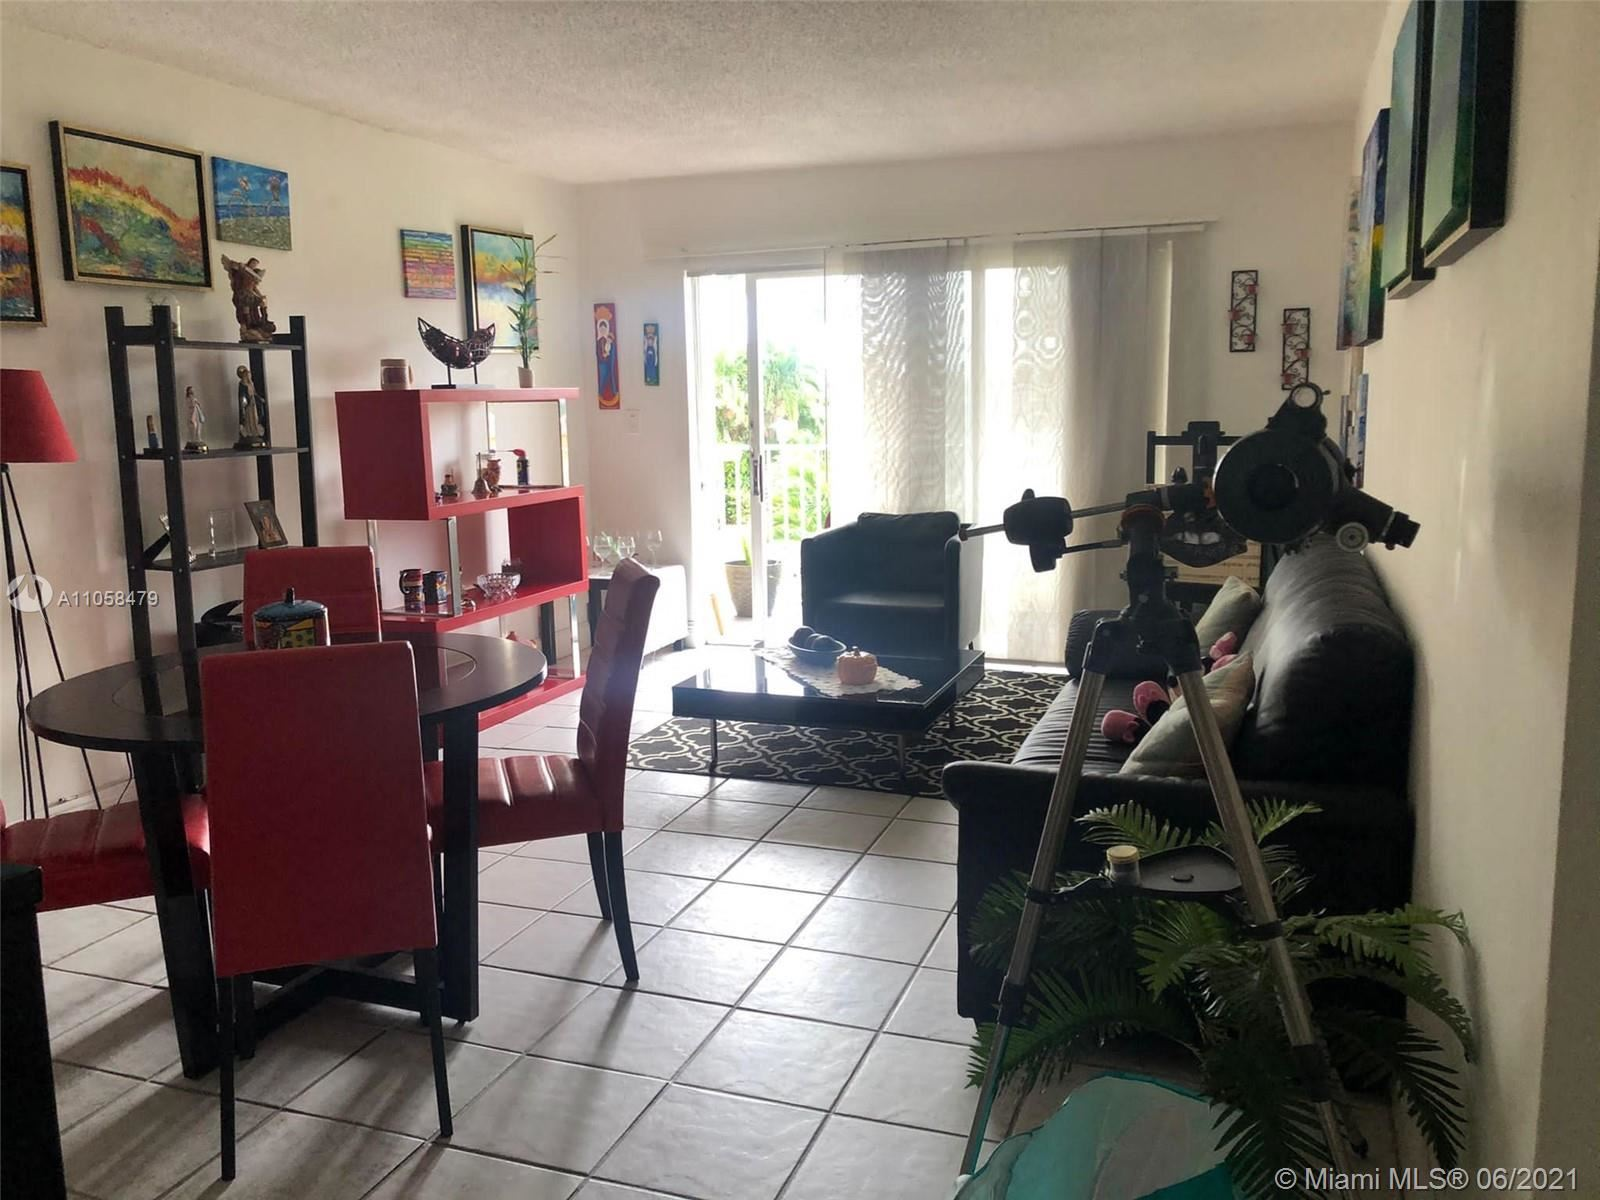 4920 NW 79th Ave #212, Doral, FL 33166 - #: A11058479